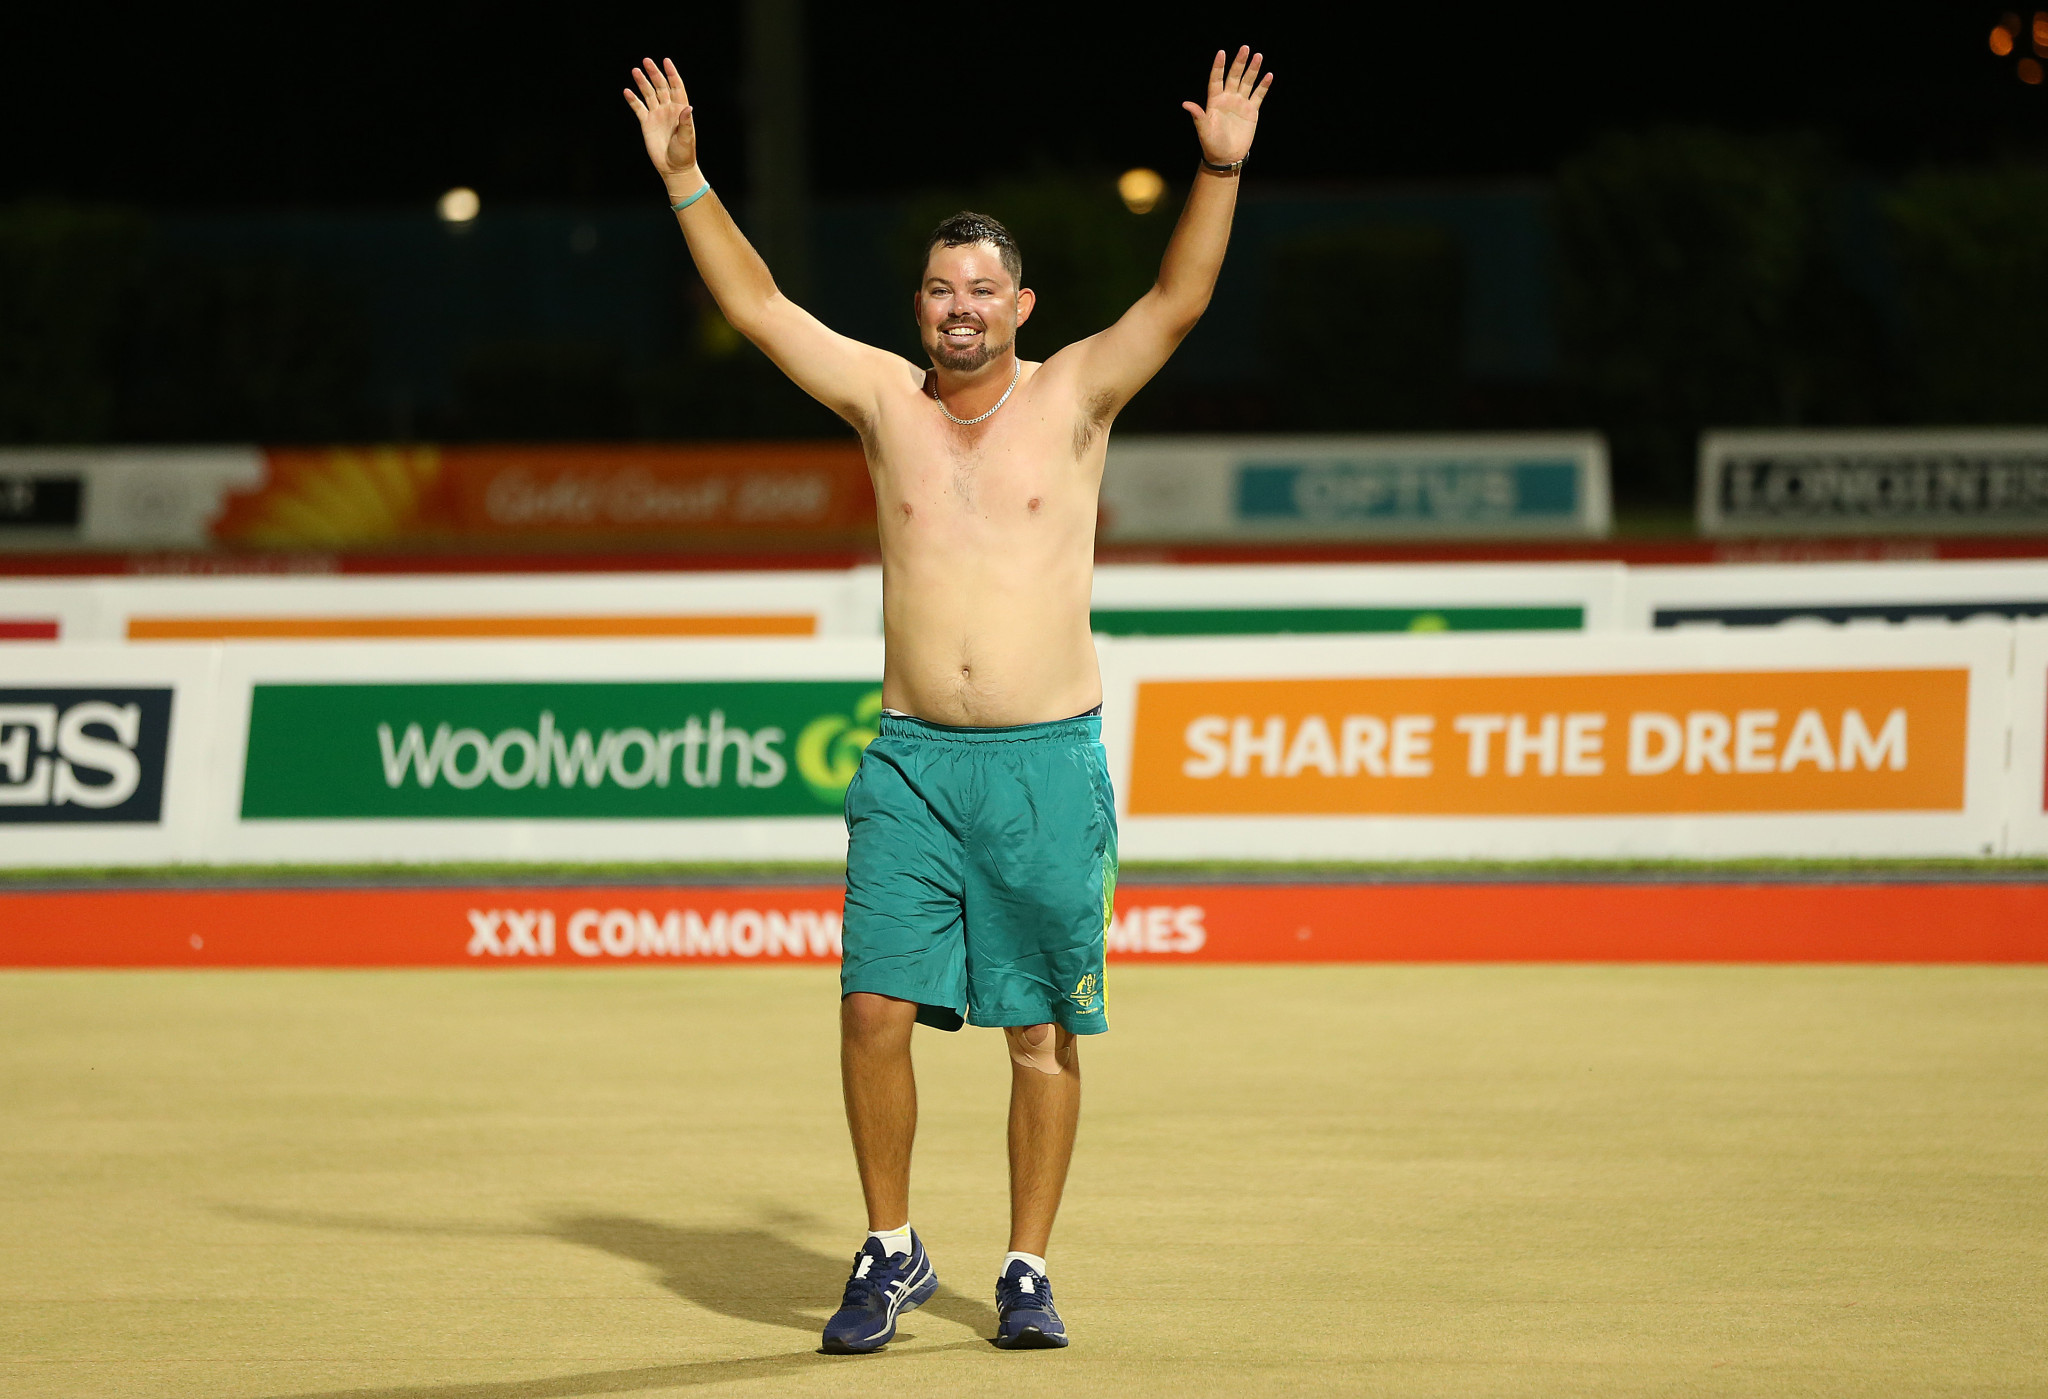 Ryan Wilson aped the celebration of Kelvin Kerkow at Melbourne 2006 when he took off his shirt following his victory in the men's singles of the bowls at Gold Coast 2018 ©Getty Images